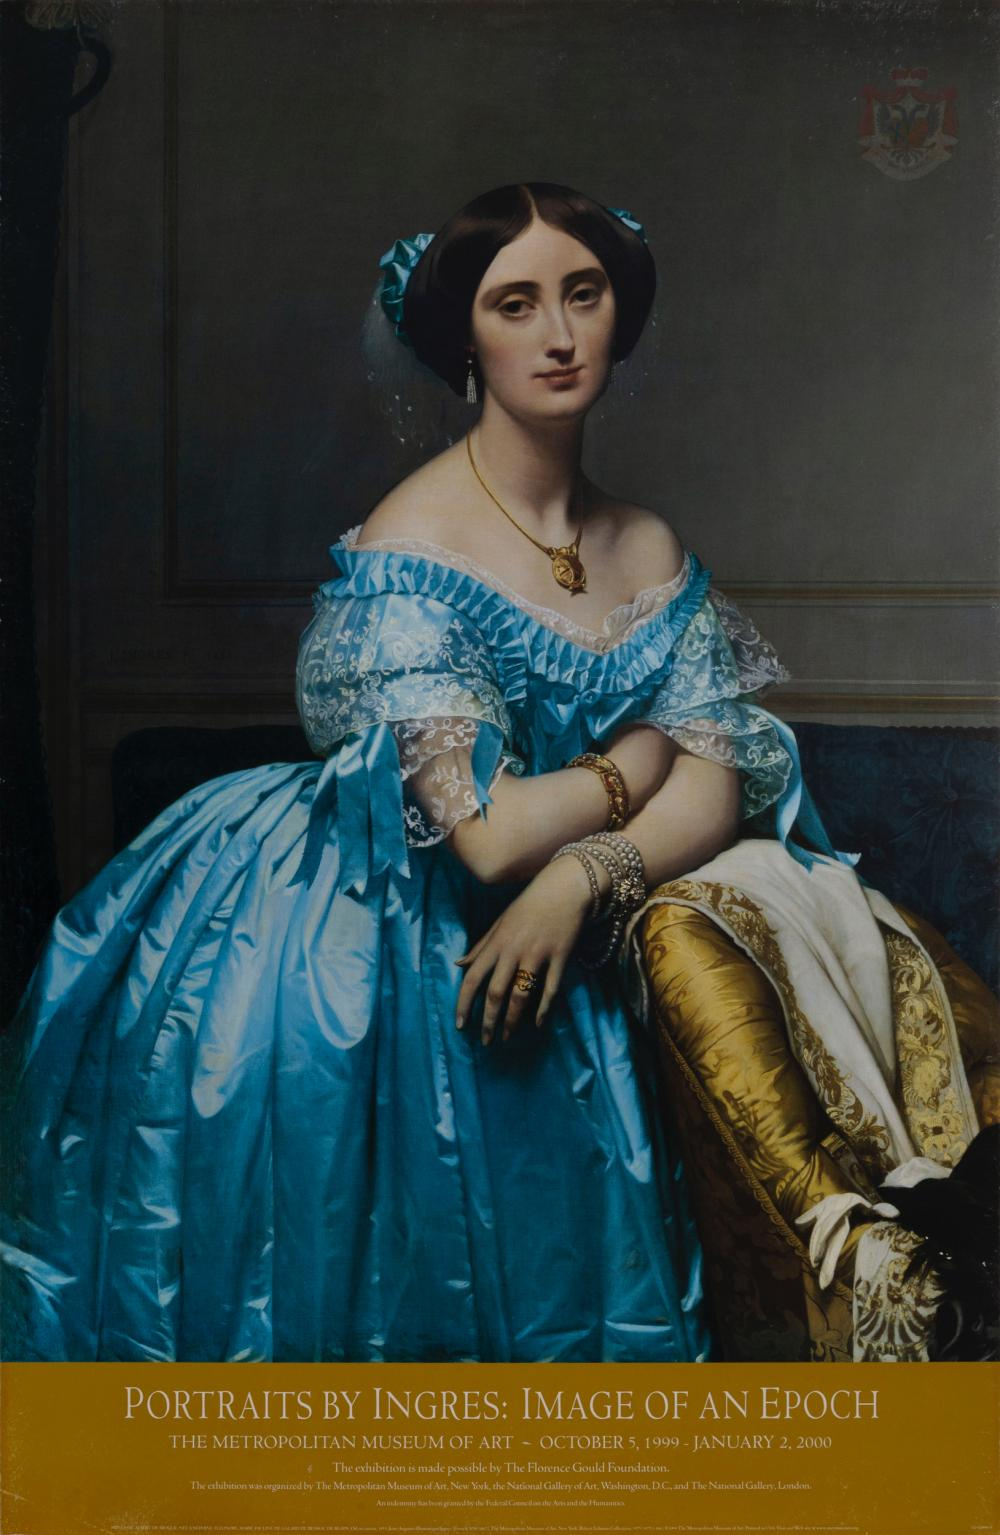 Jean-Auguste-Dominique Ingres, The Princesse de Brogile, Poster on foamcore